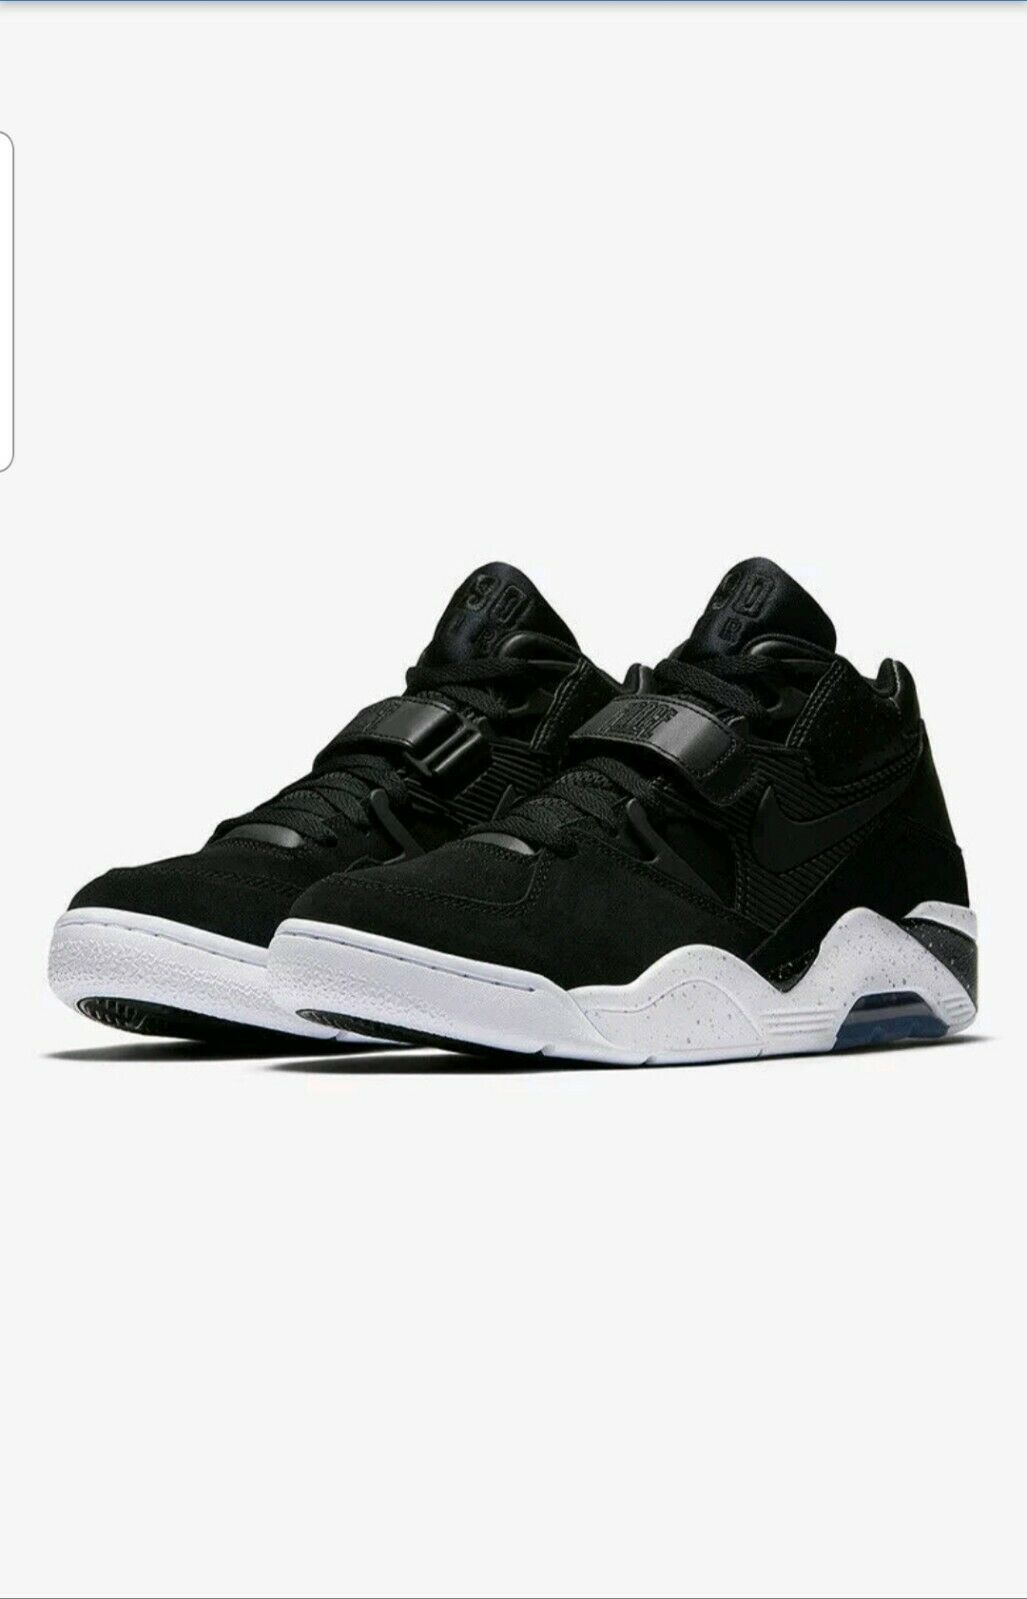 Nike Air Force 180 men lifestyle sneakers NEW black white 310095-003 size 10.5